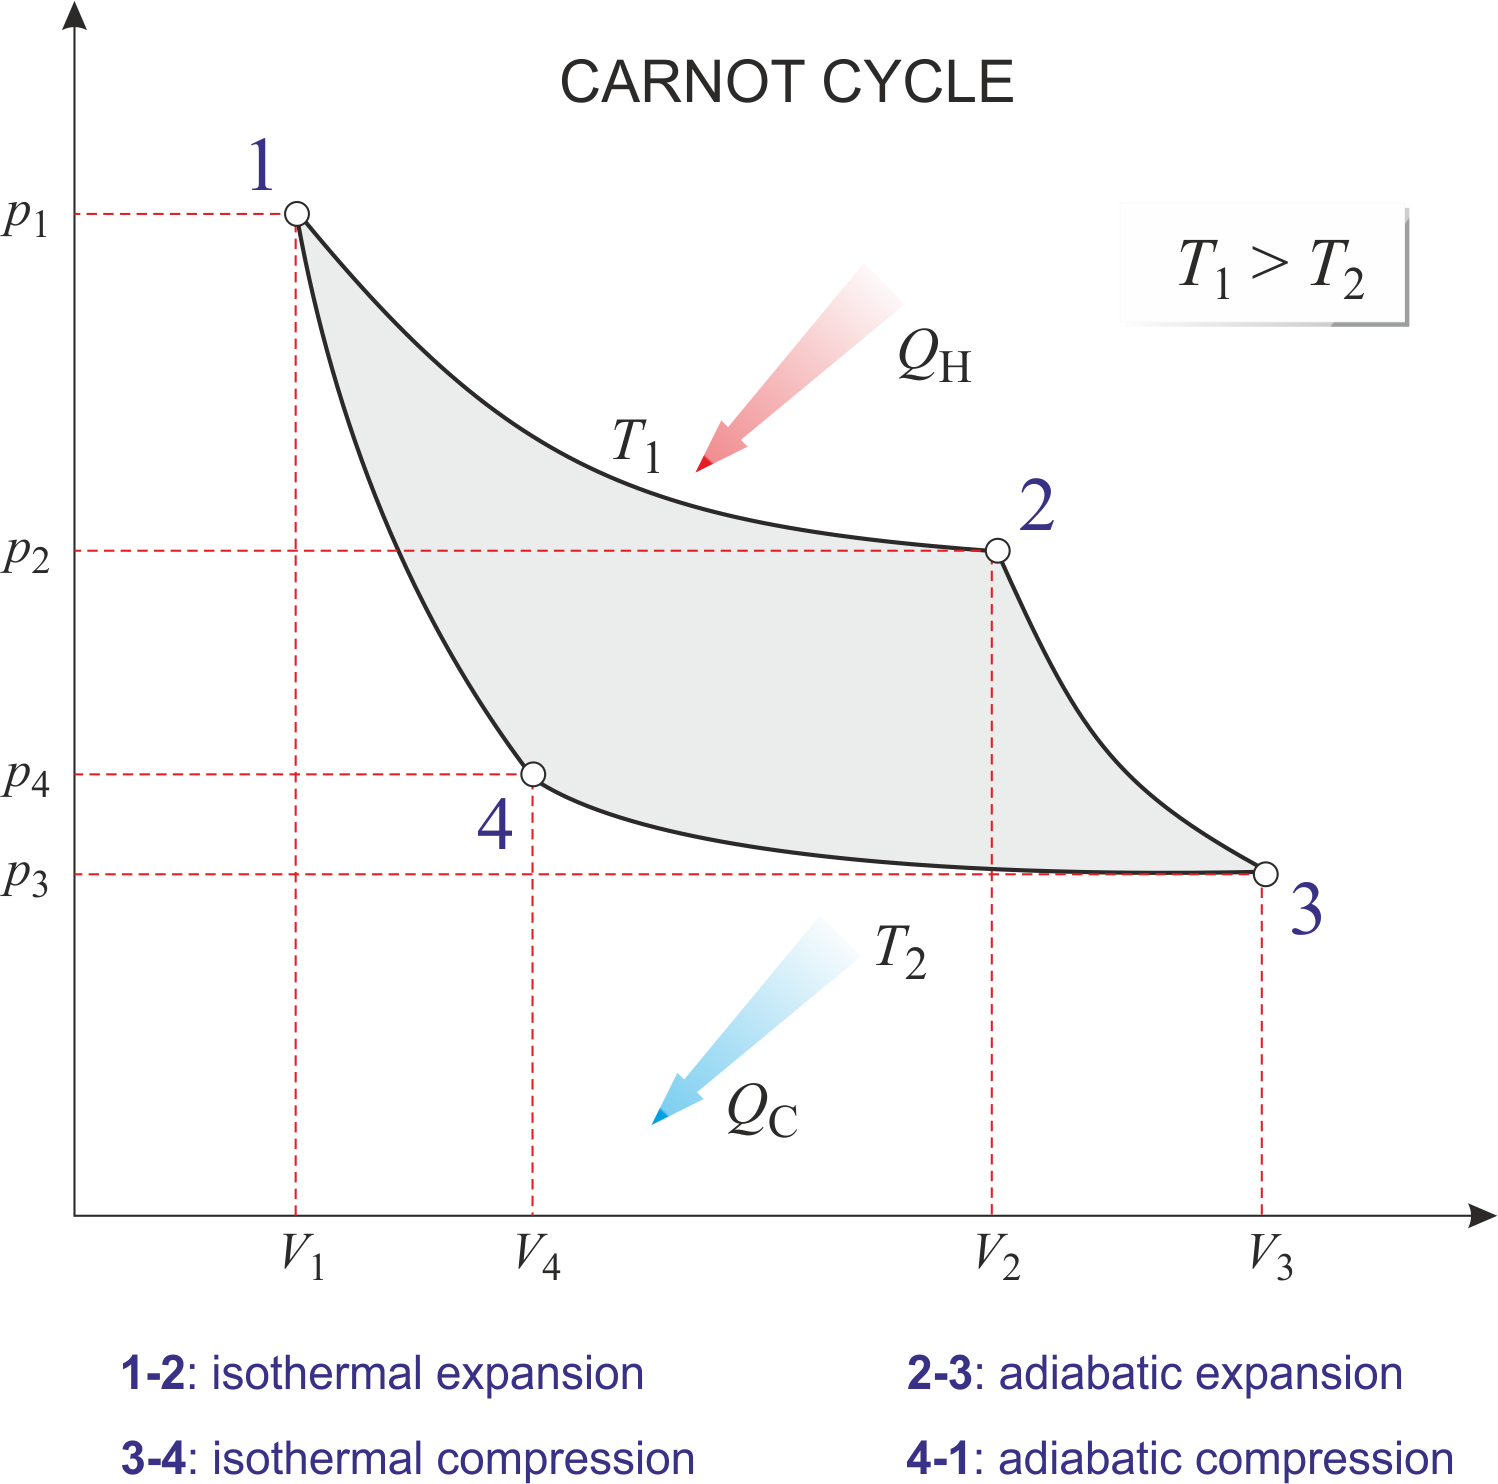 machine cycle definition